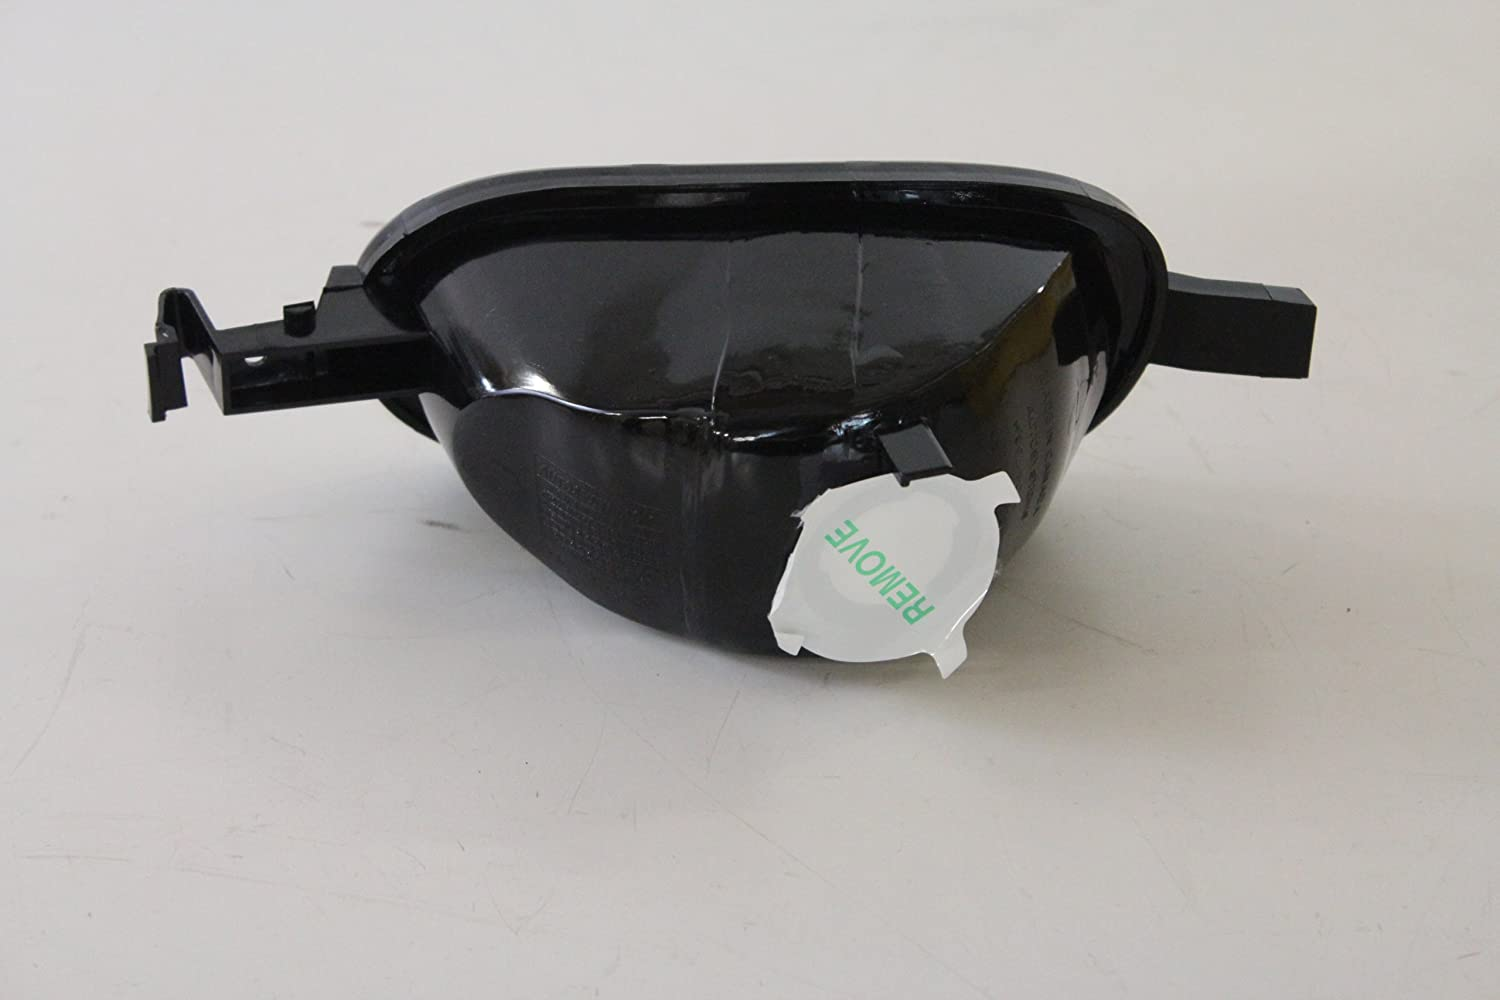 Genuine GM Parts 15937714 Passenger Side Cornering Light Lens//Housing Genuine General Motors Parts